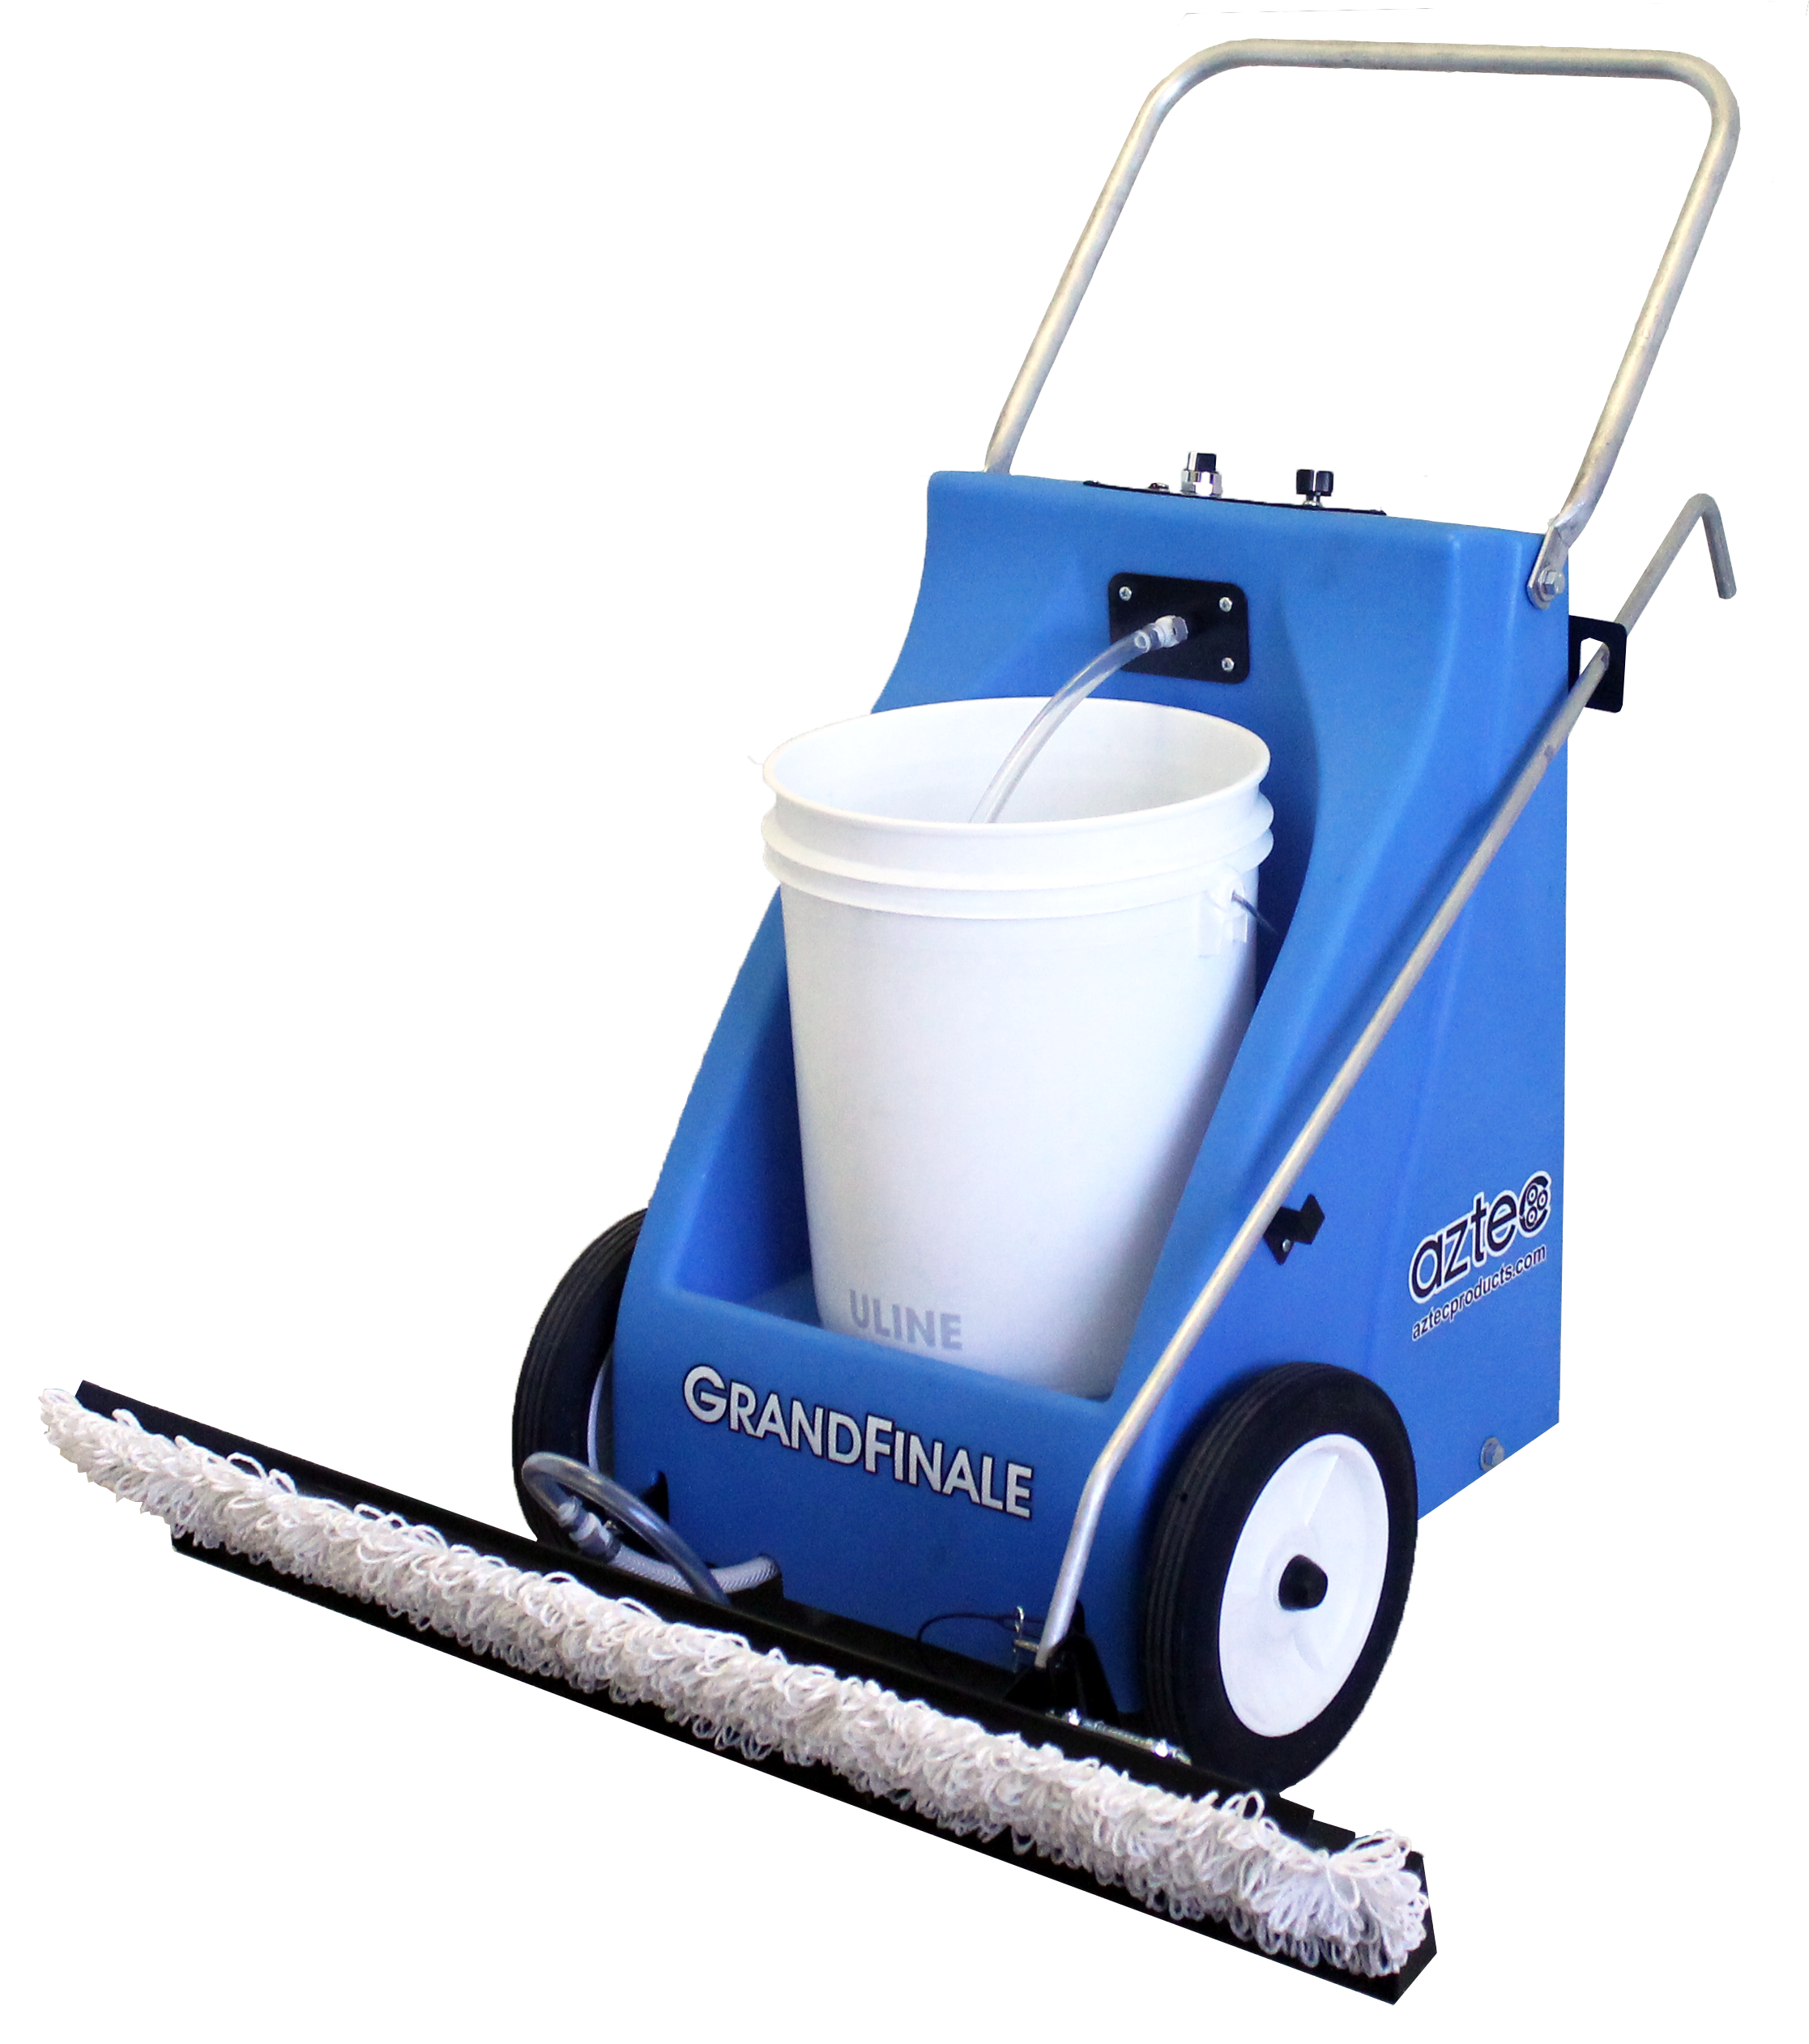 rental walmart for commercial machine machines cleaning nll domestic automatic scrubbing sale depot home hardwood loline rent numatic reviews floor scrubber delivery